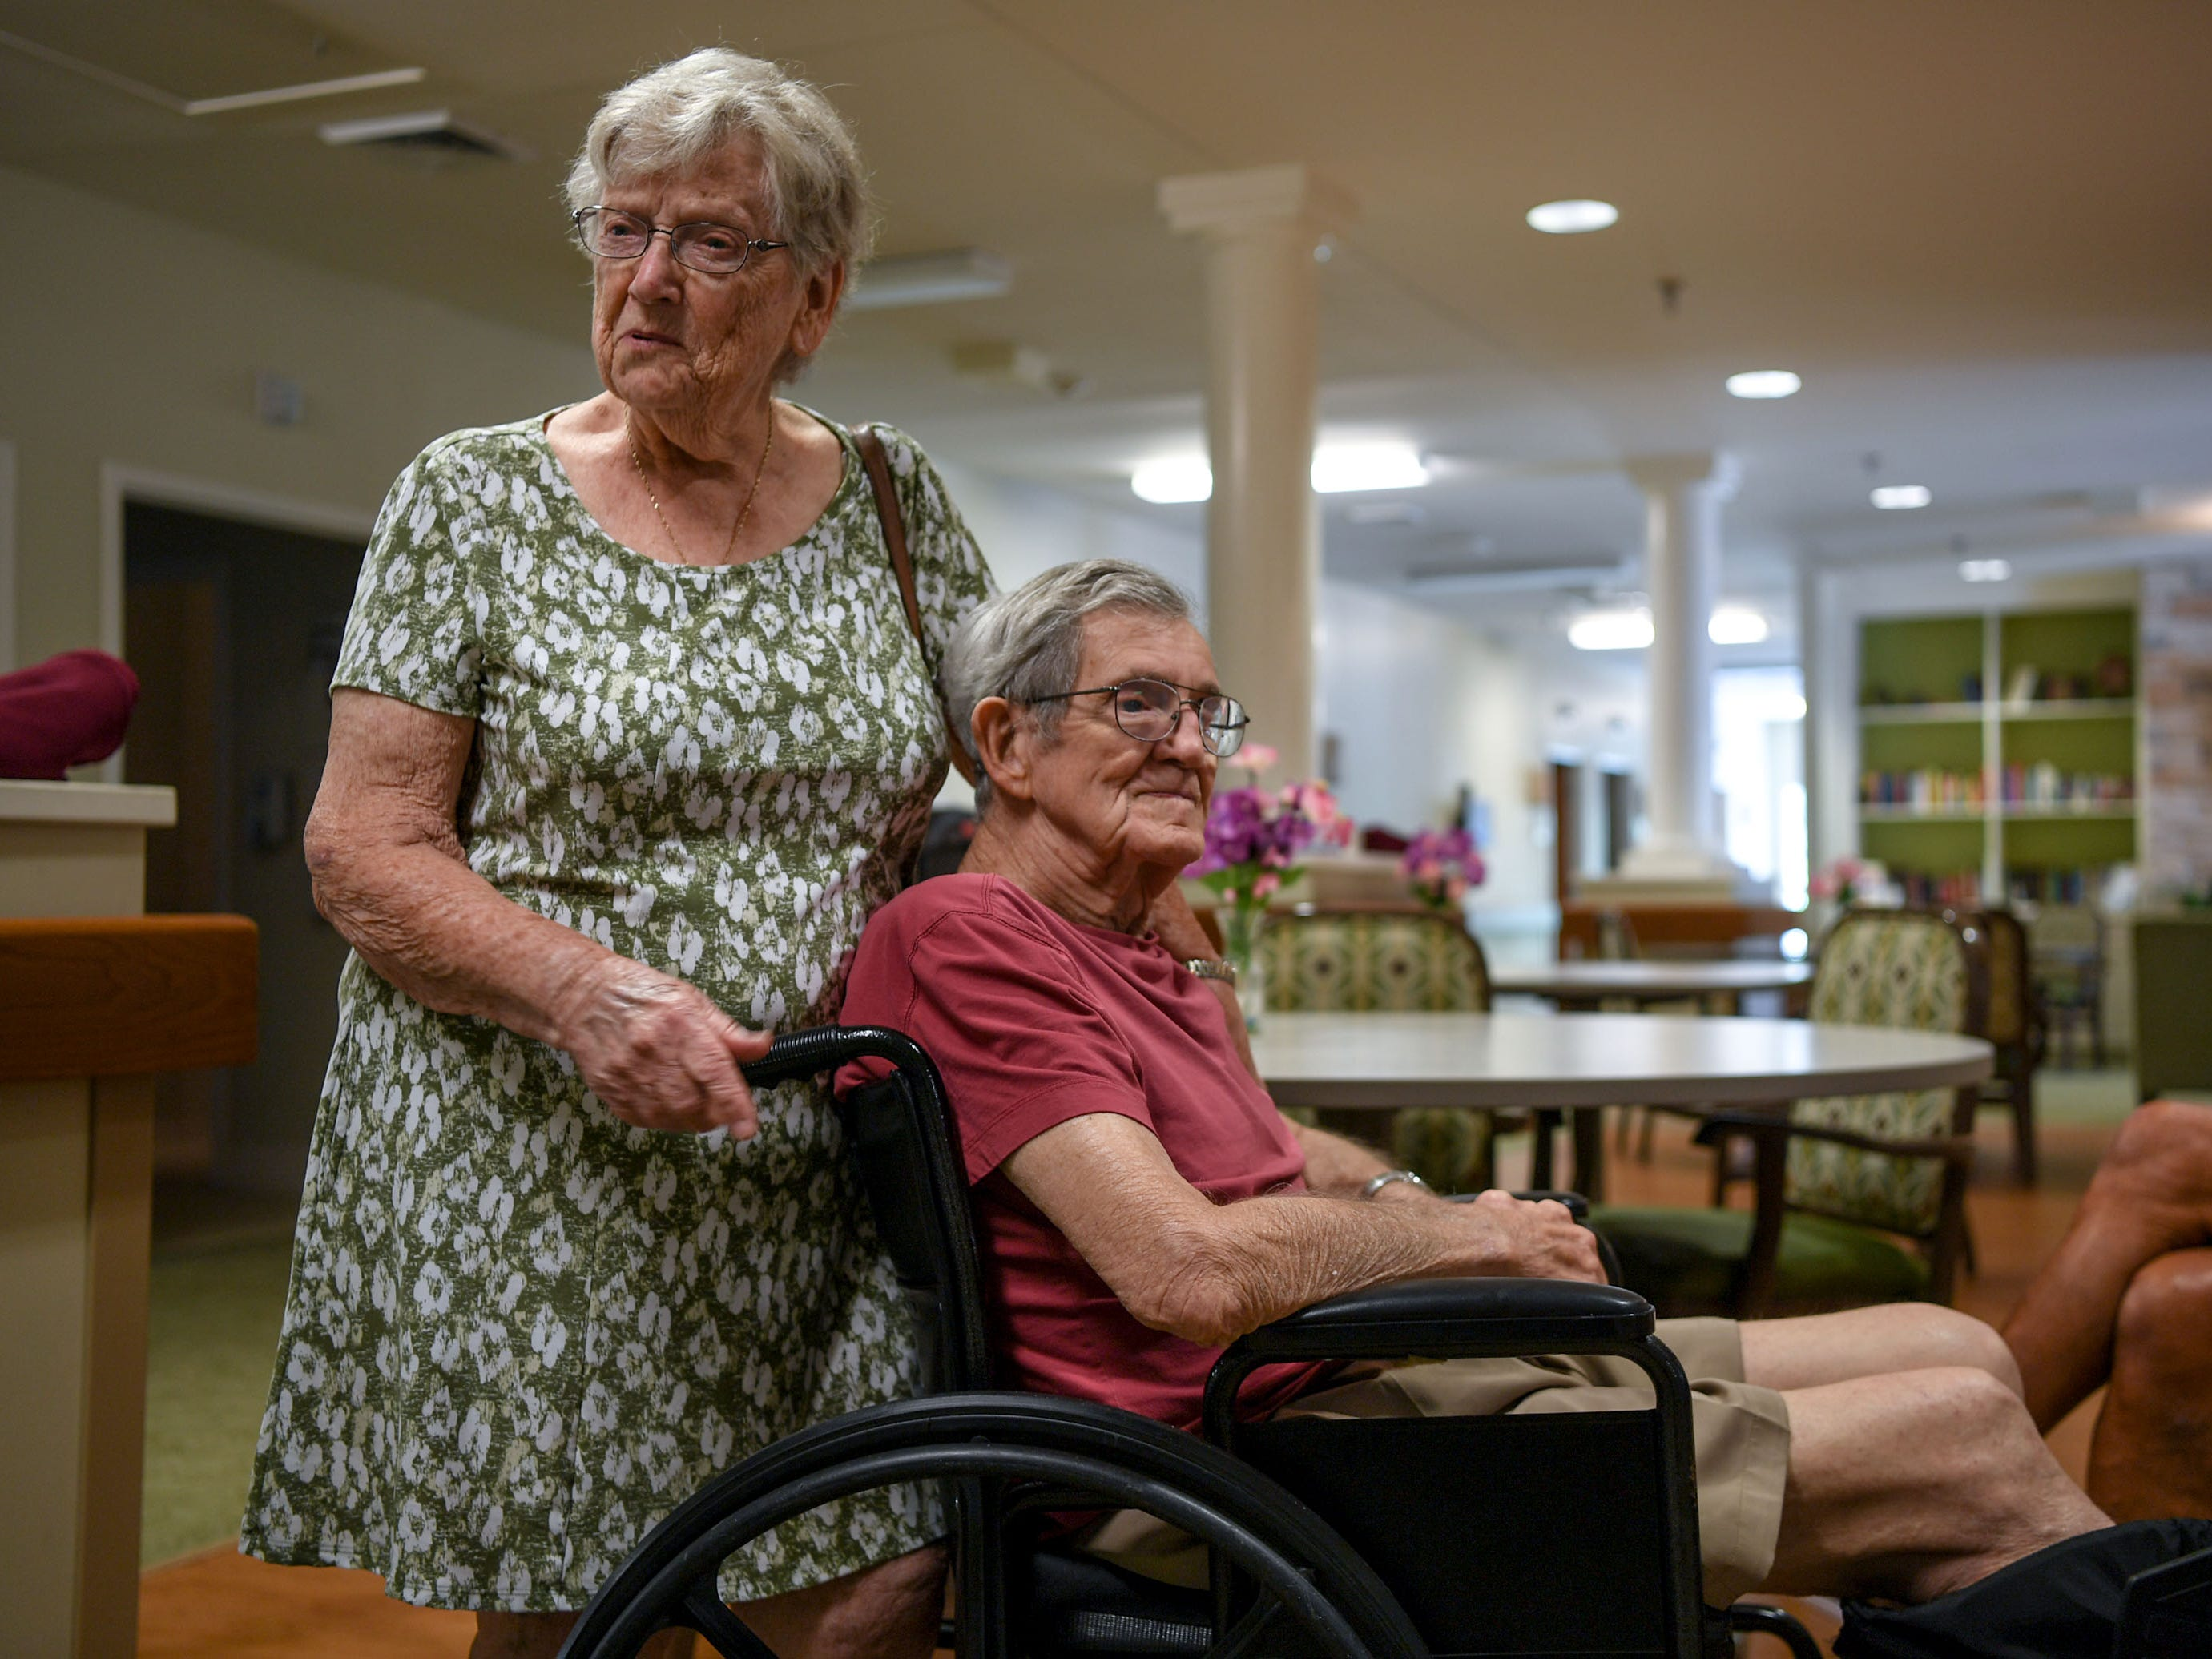 Kay Torrens, left, stands with her husband Leo Torrens before leaving him at the Trinity Grove Nursing Home in Wilmington, North Carolina on Wednesday. Hurricane Florence is expected to reach Wilmington on Thursday night. (Ken Ruinard / Greenville News / Gannett USA Today Network / 2018 )